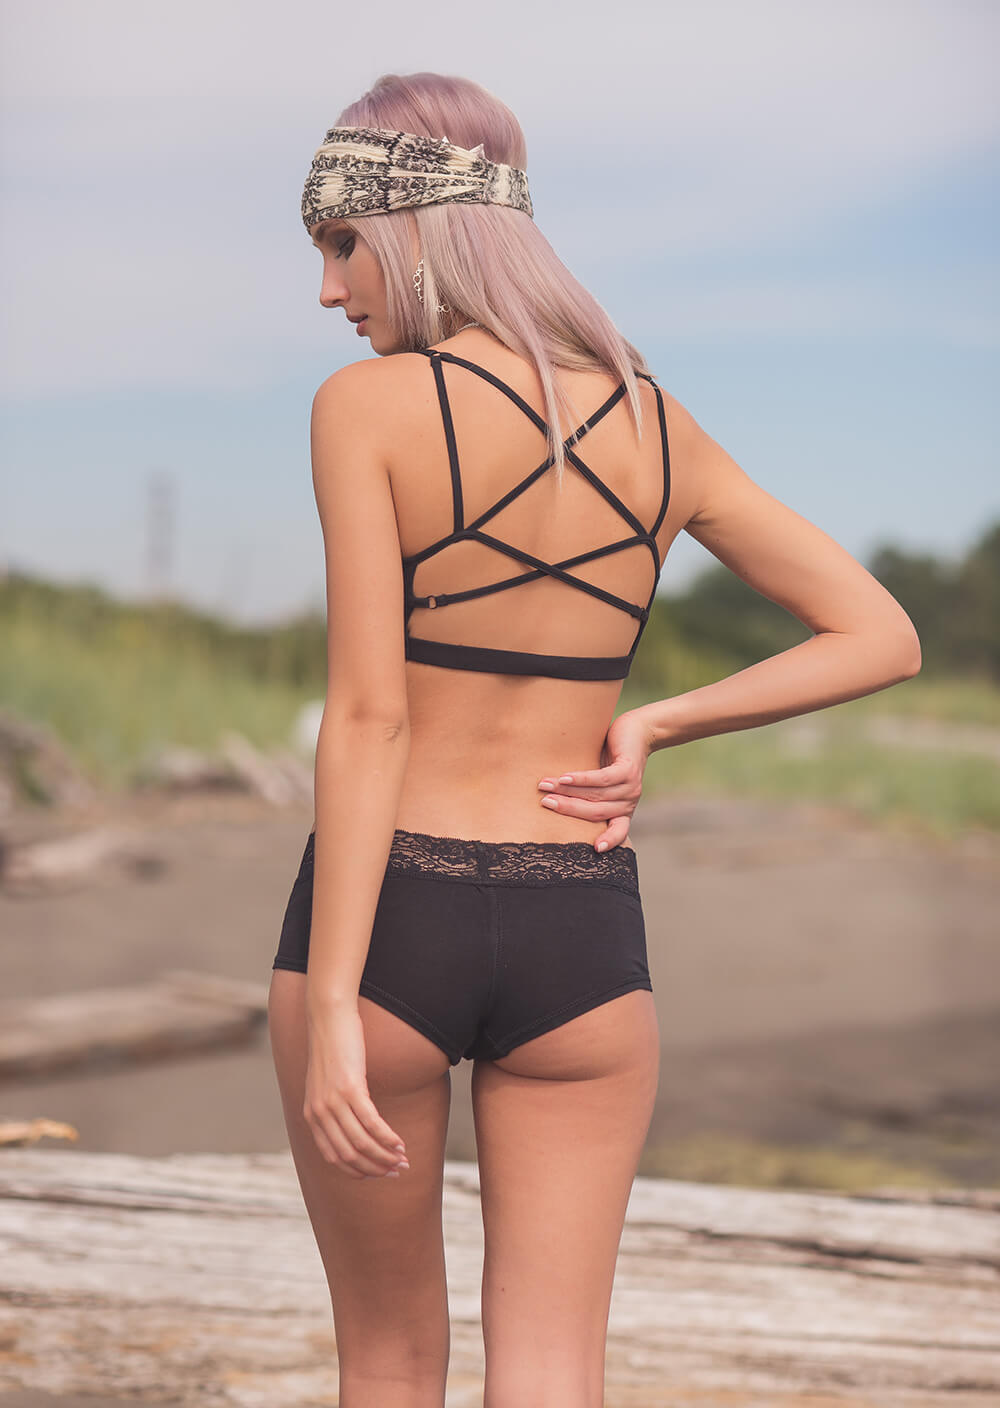 Model facing away wearing Nomads Hemp Wear organic cotton and bamboo Temptation bra, with criss cross adjustable straps.